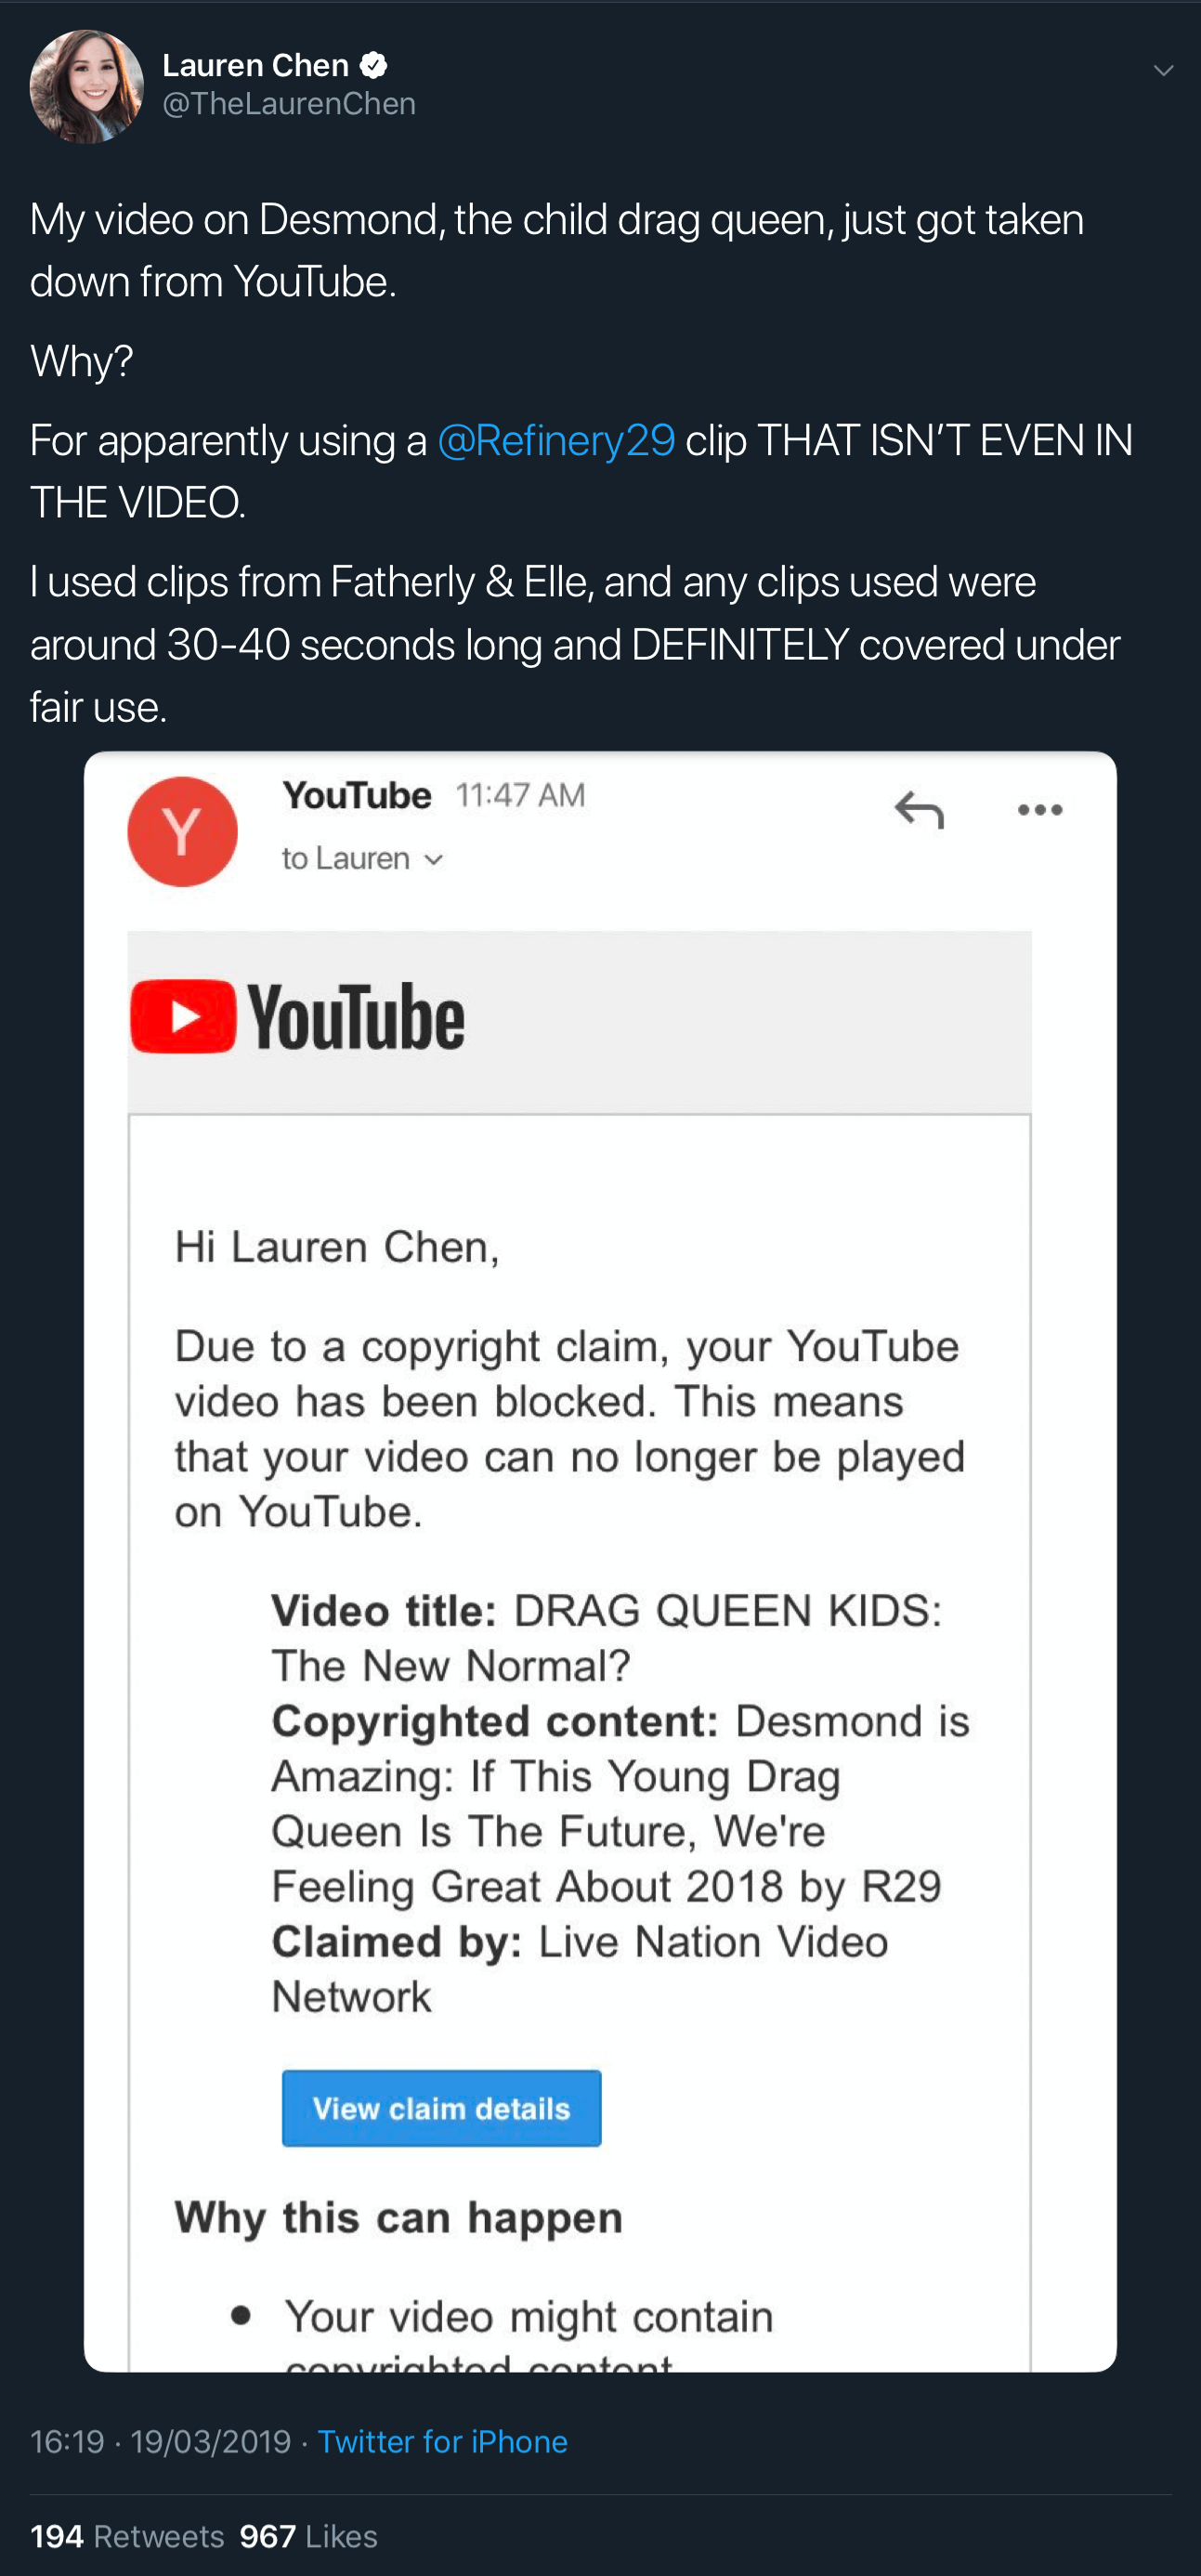 A tweet showing the fake YouTube copyright claim against Lauren Chen.